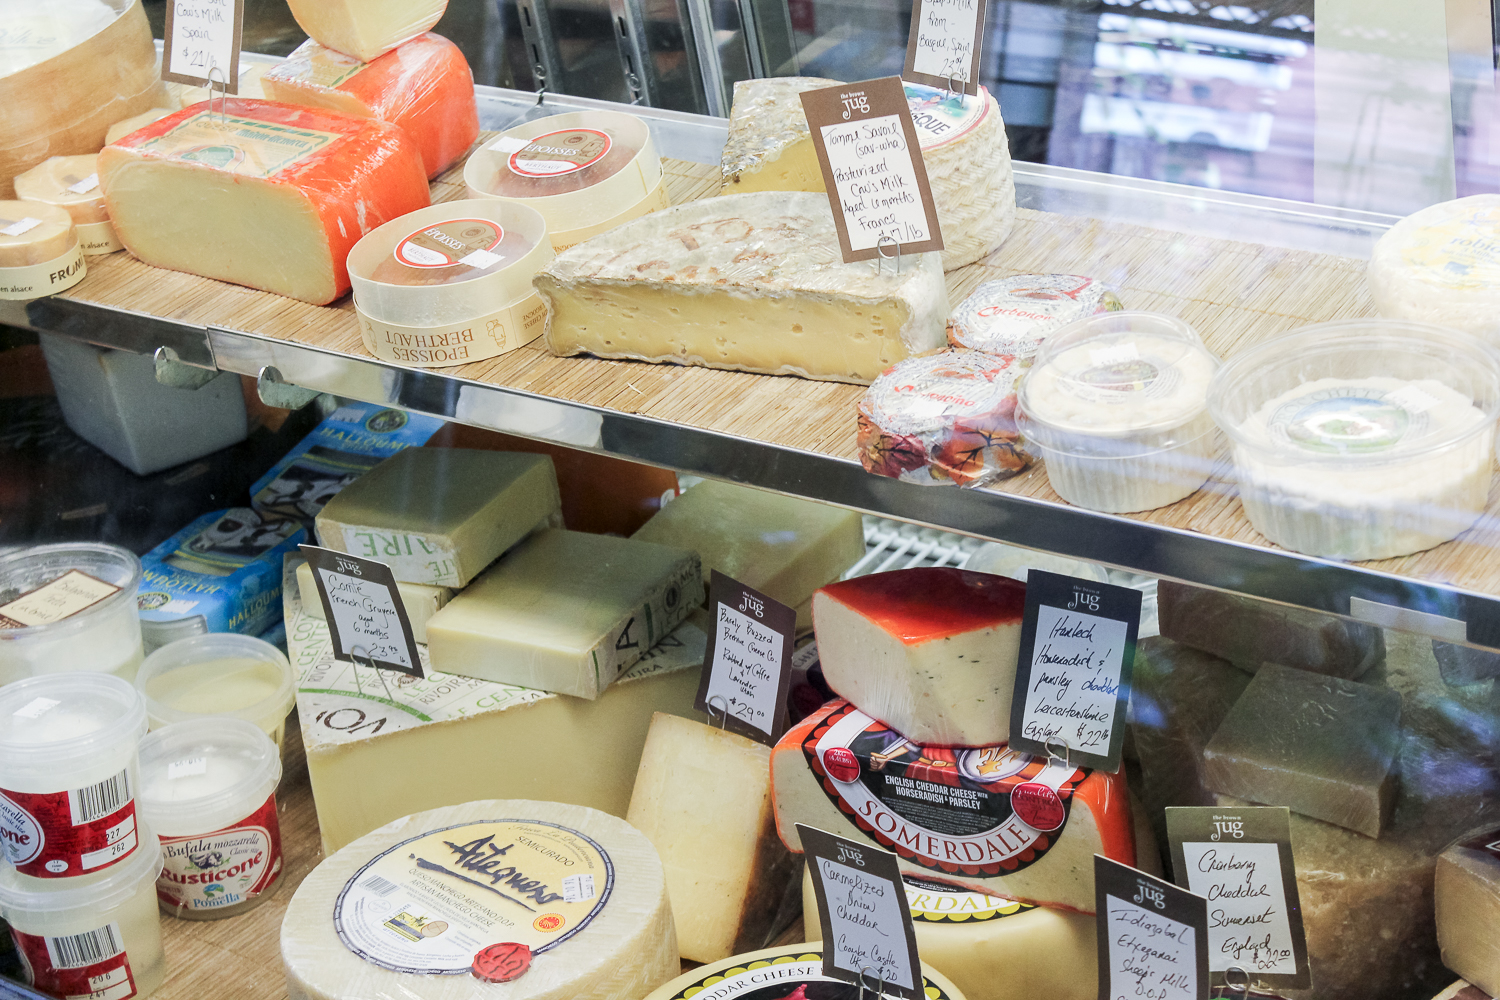 The Brown Jug in Sandwich gourmet cheeses